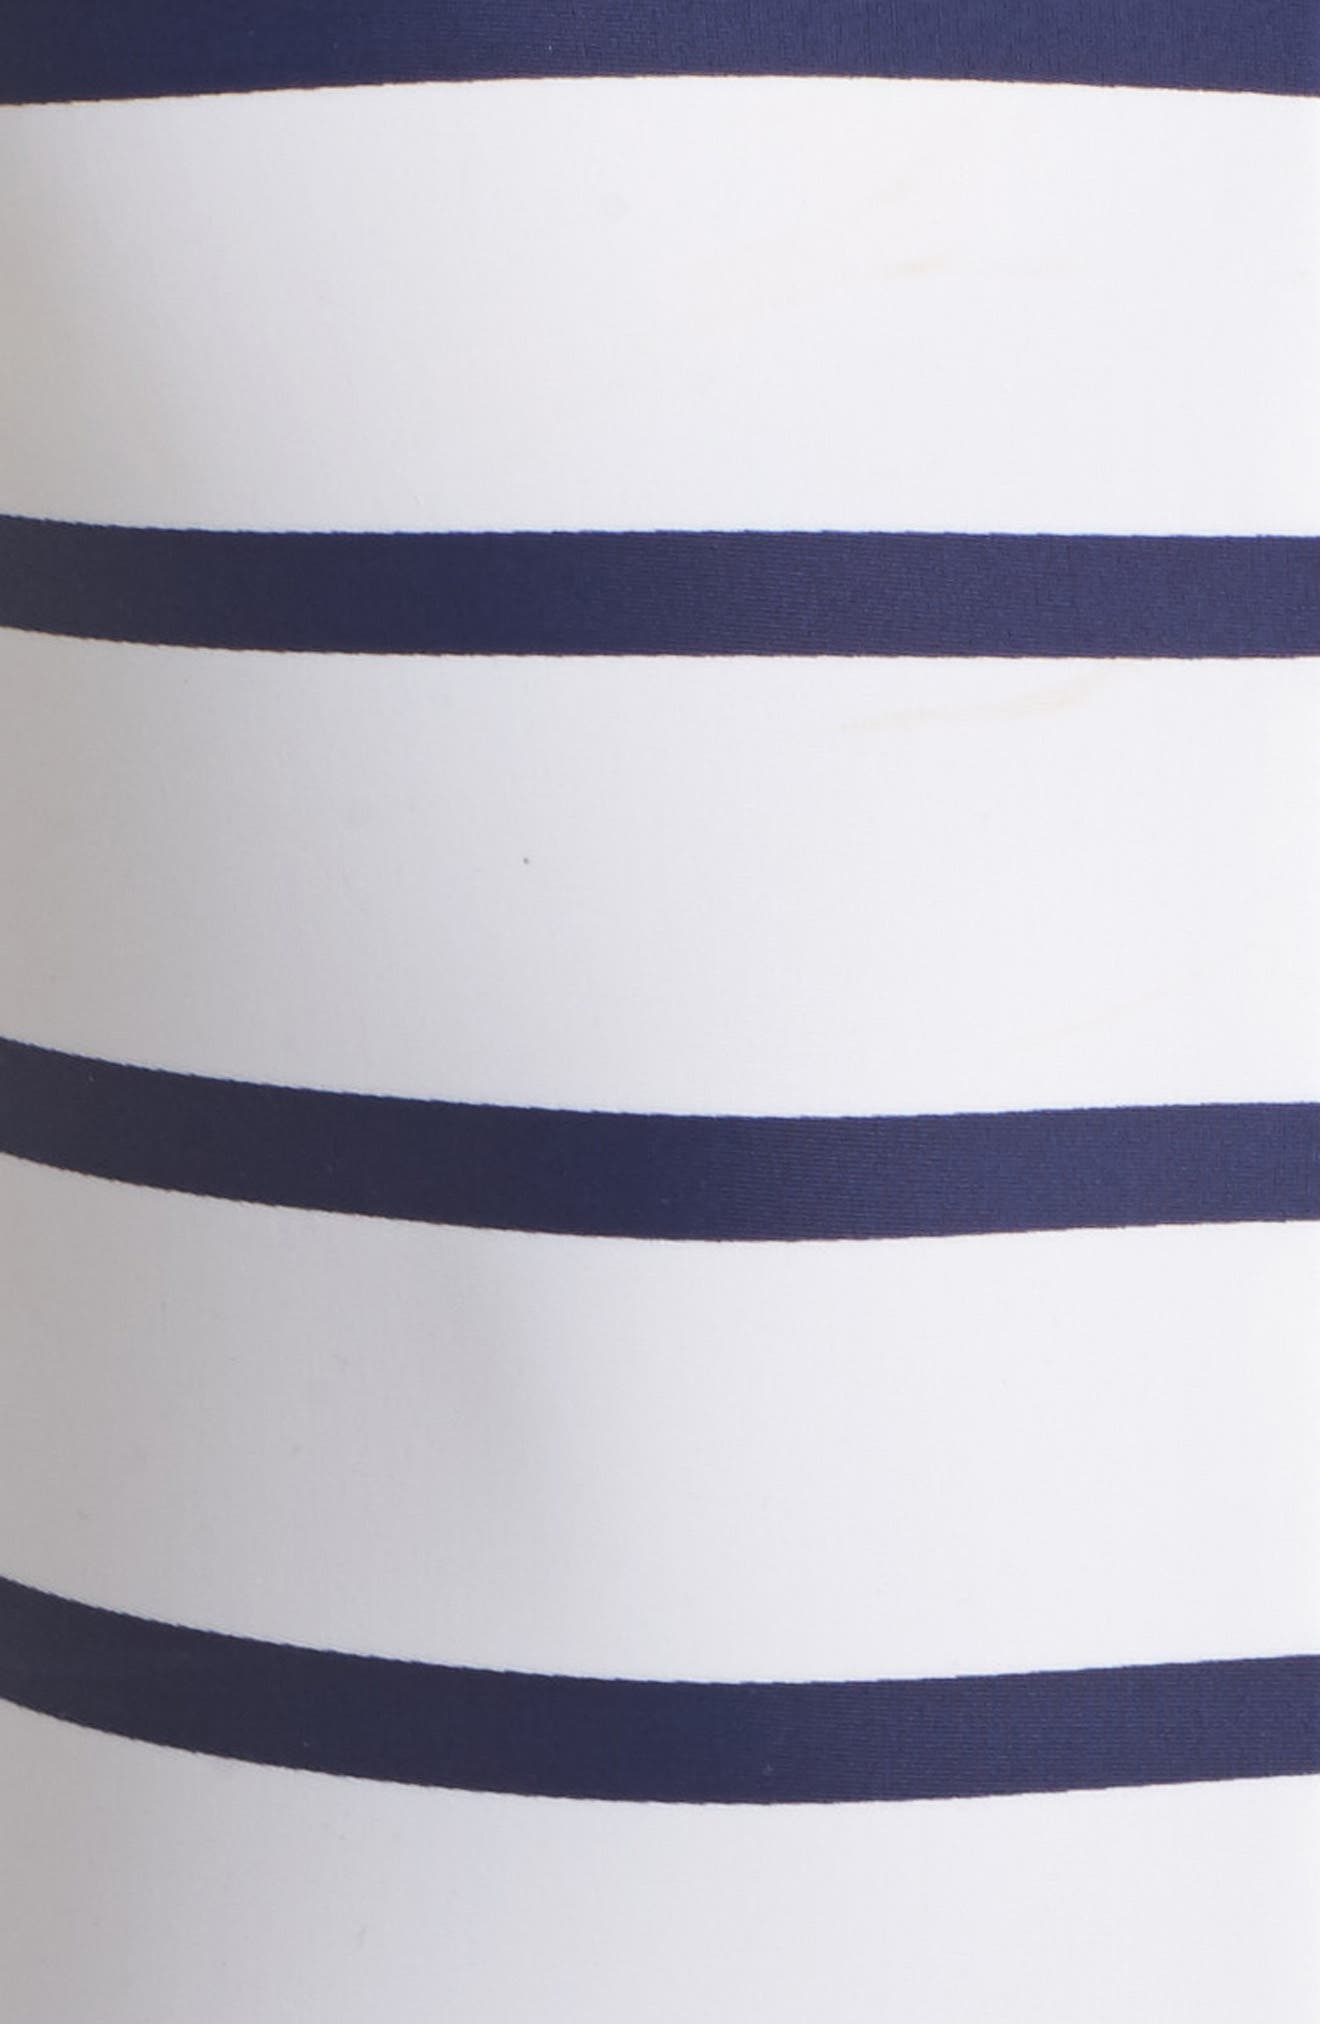 Long Sleeve One-Piece Swimsuit,                             Alternate thumbnail 5, color,                             Navy/ White